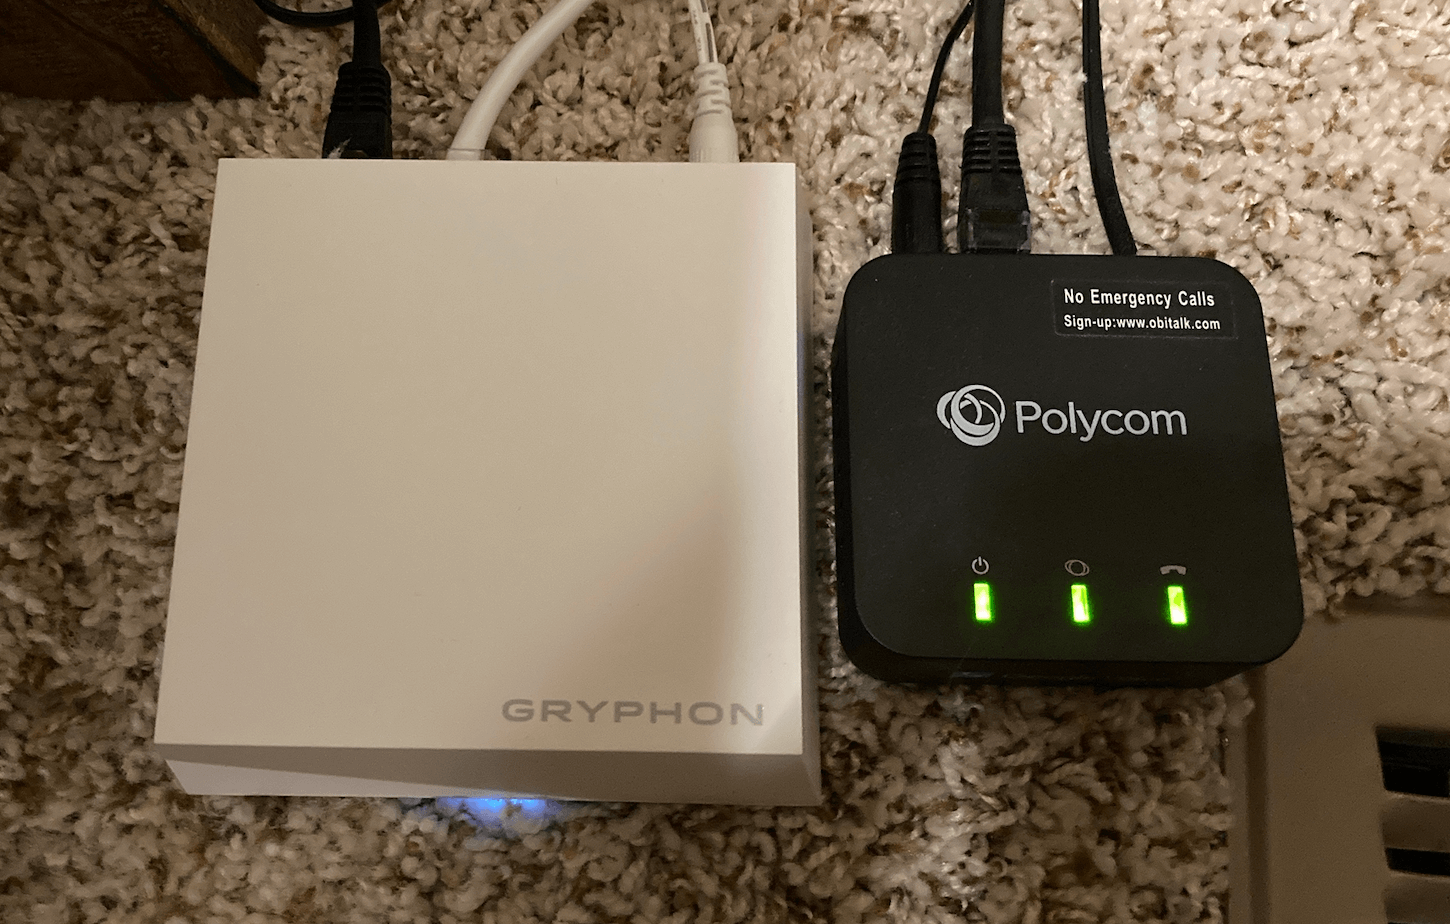 Gryphon Router in Chris' Home